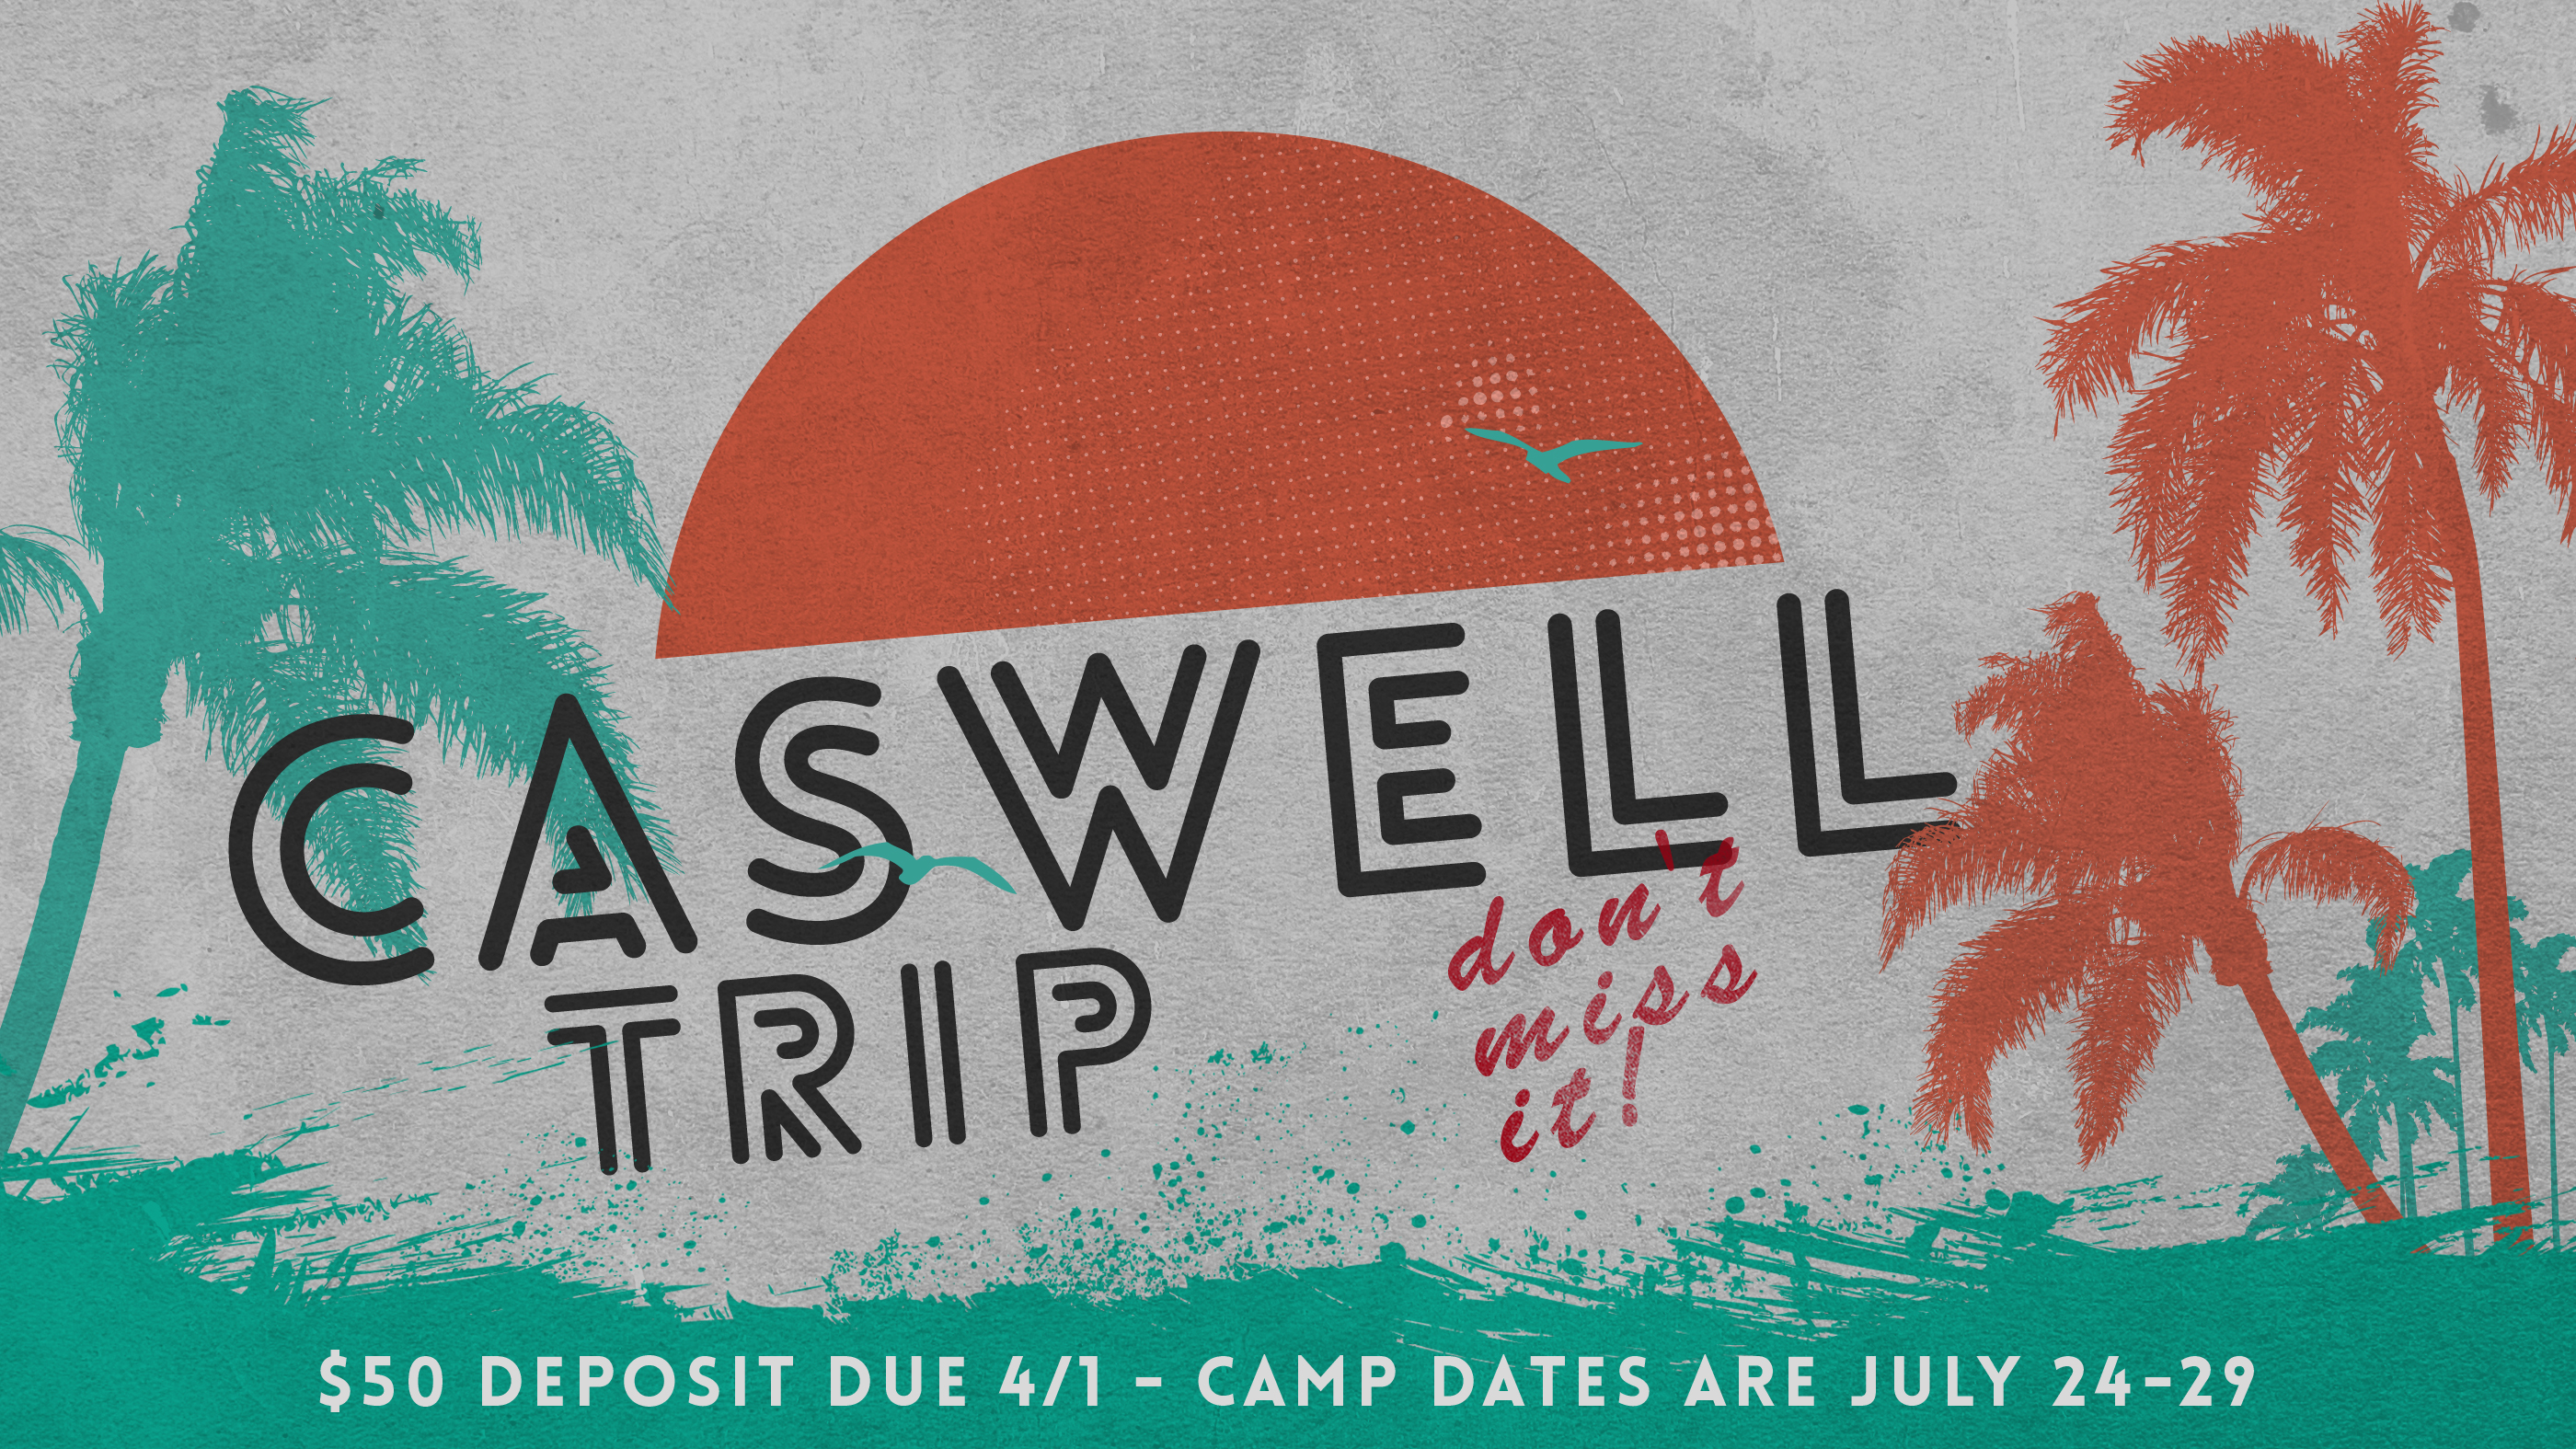 Caswell 2017